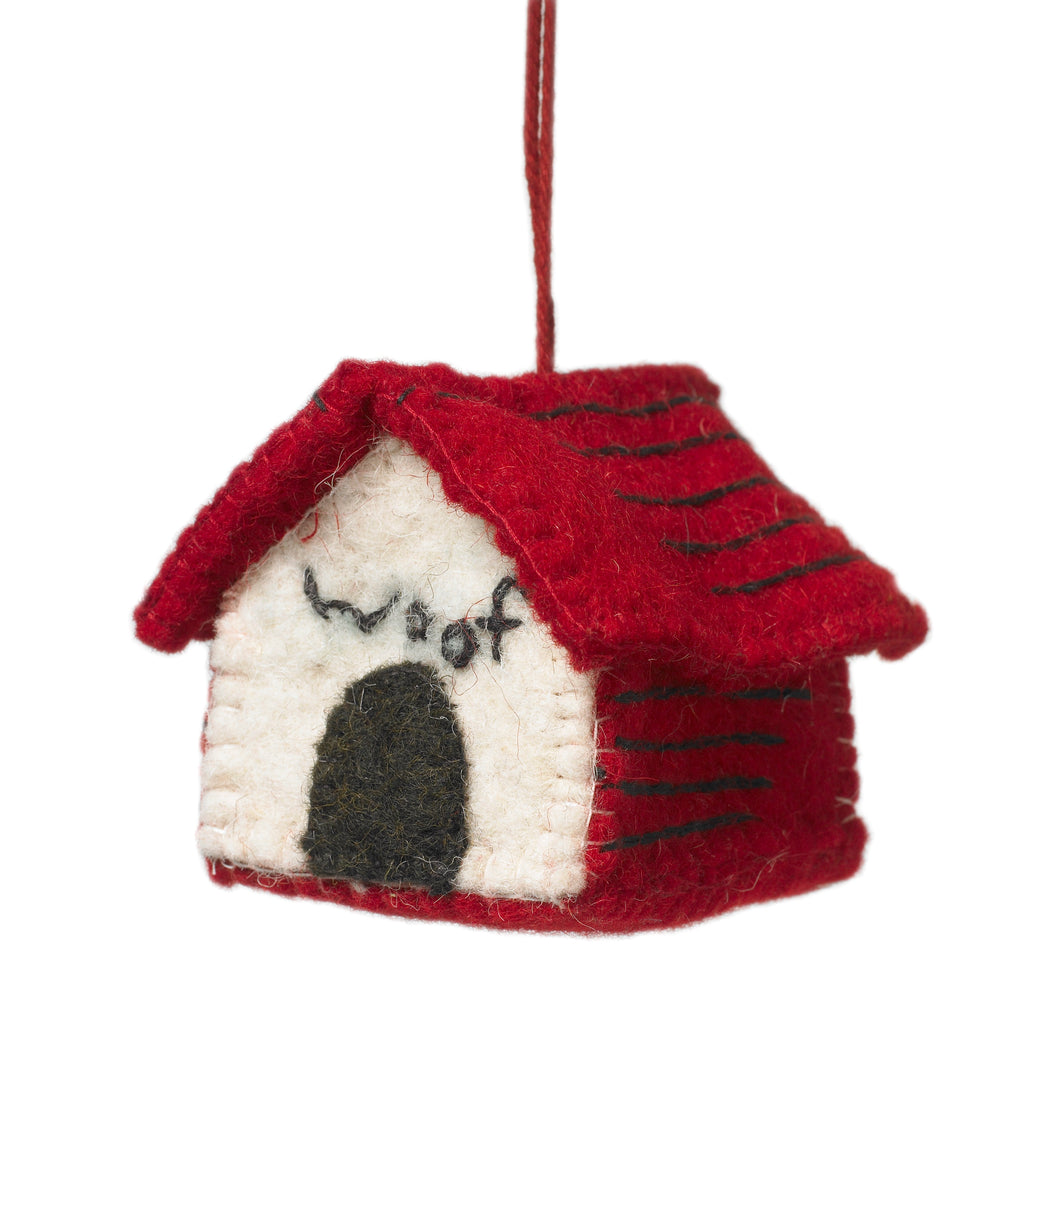 Dog House Ornament with WOOF Embroidery